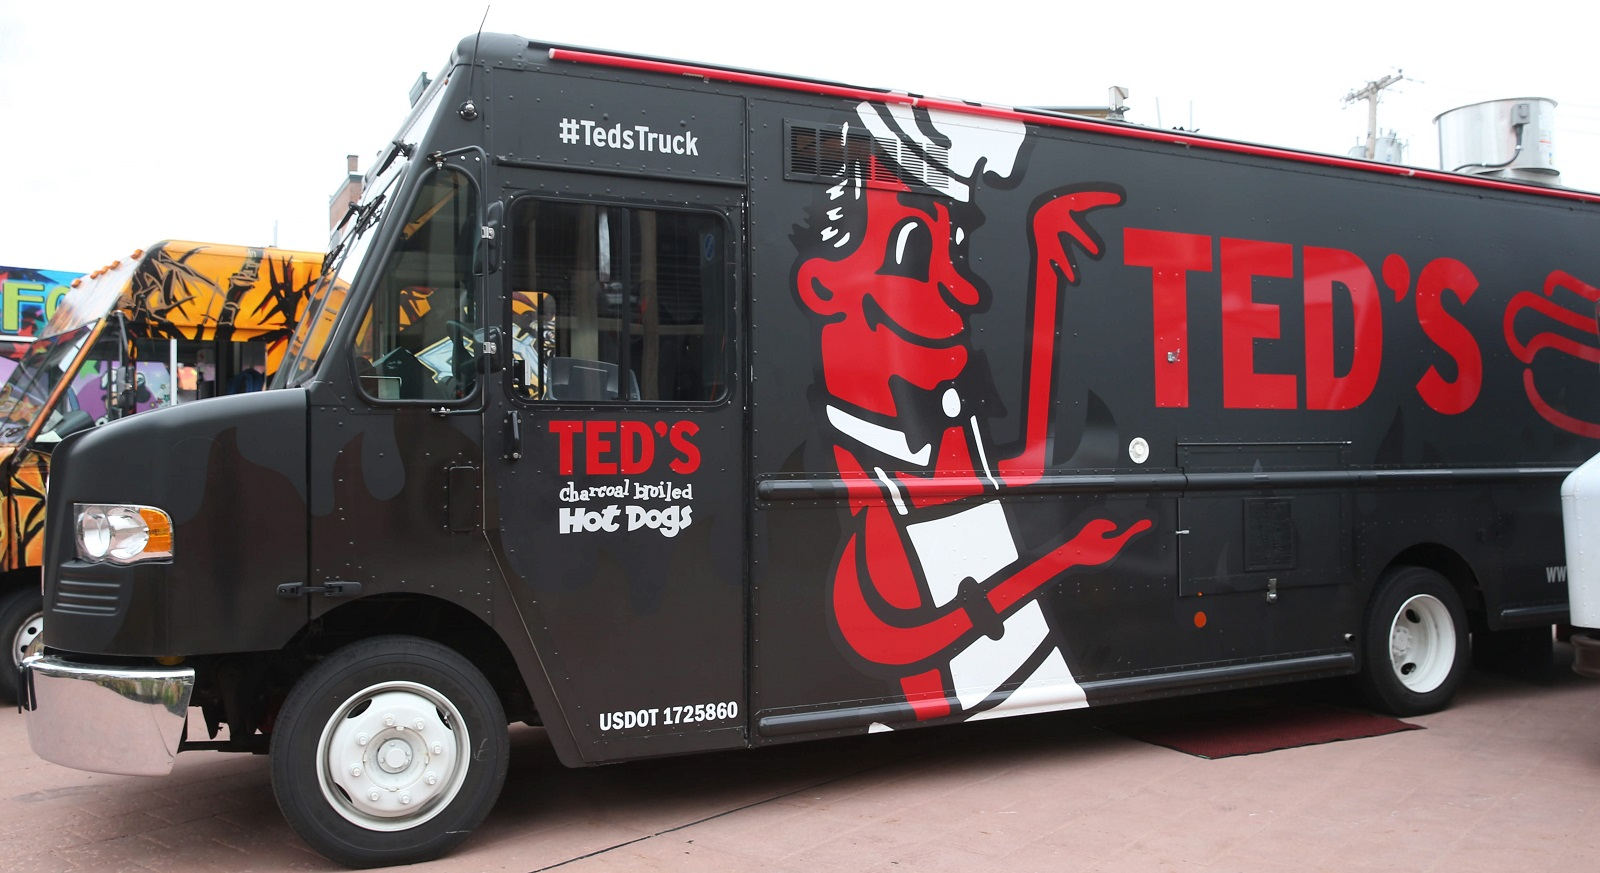 Ted's Truck, the Charcoal Chariot, is an extension of Ted's Hot Dogs. (Sharon Cantillon/Buffalo News)